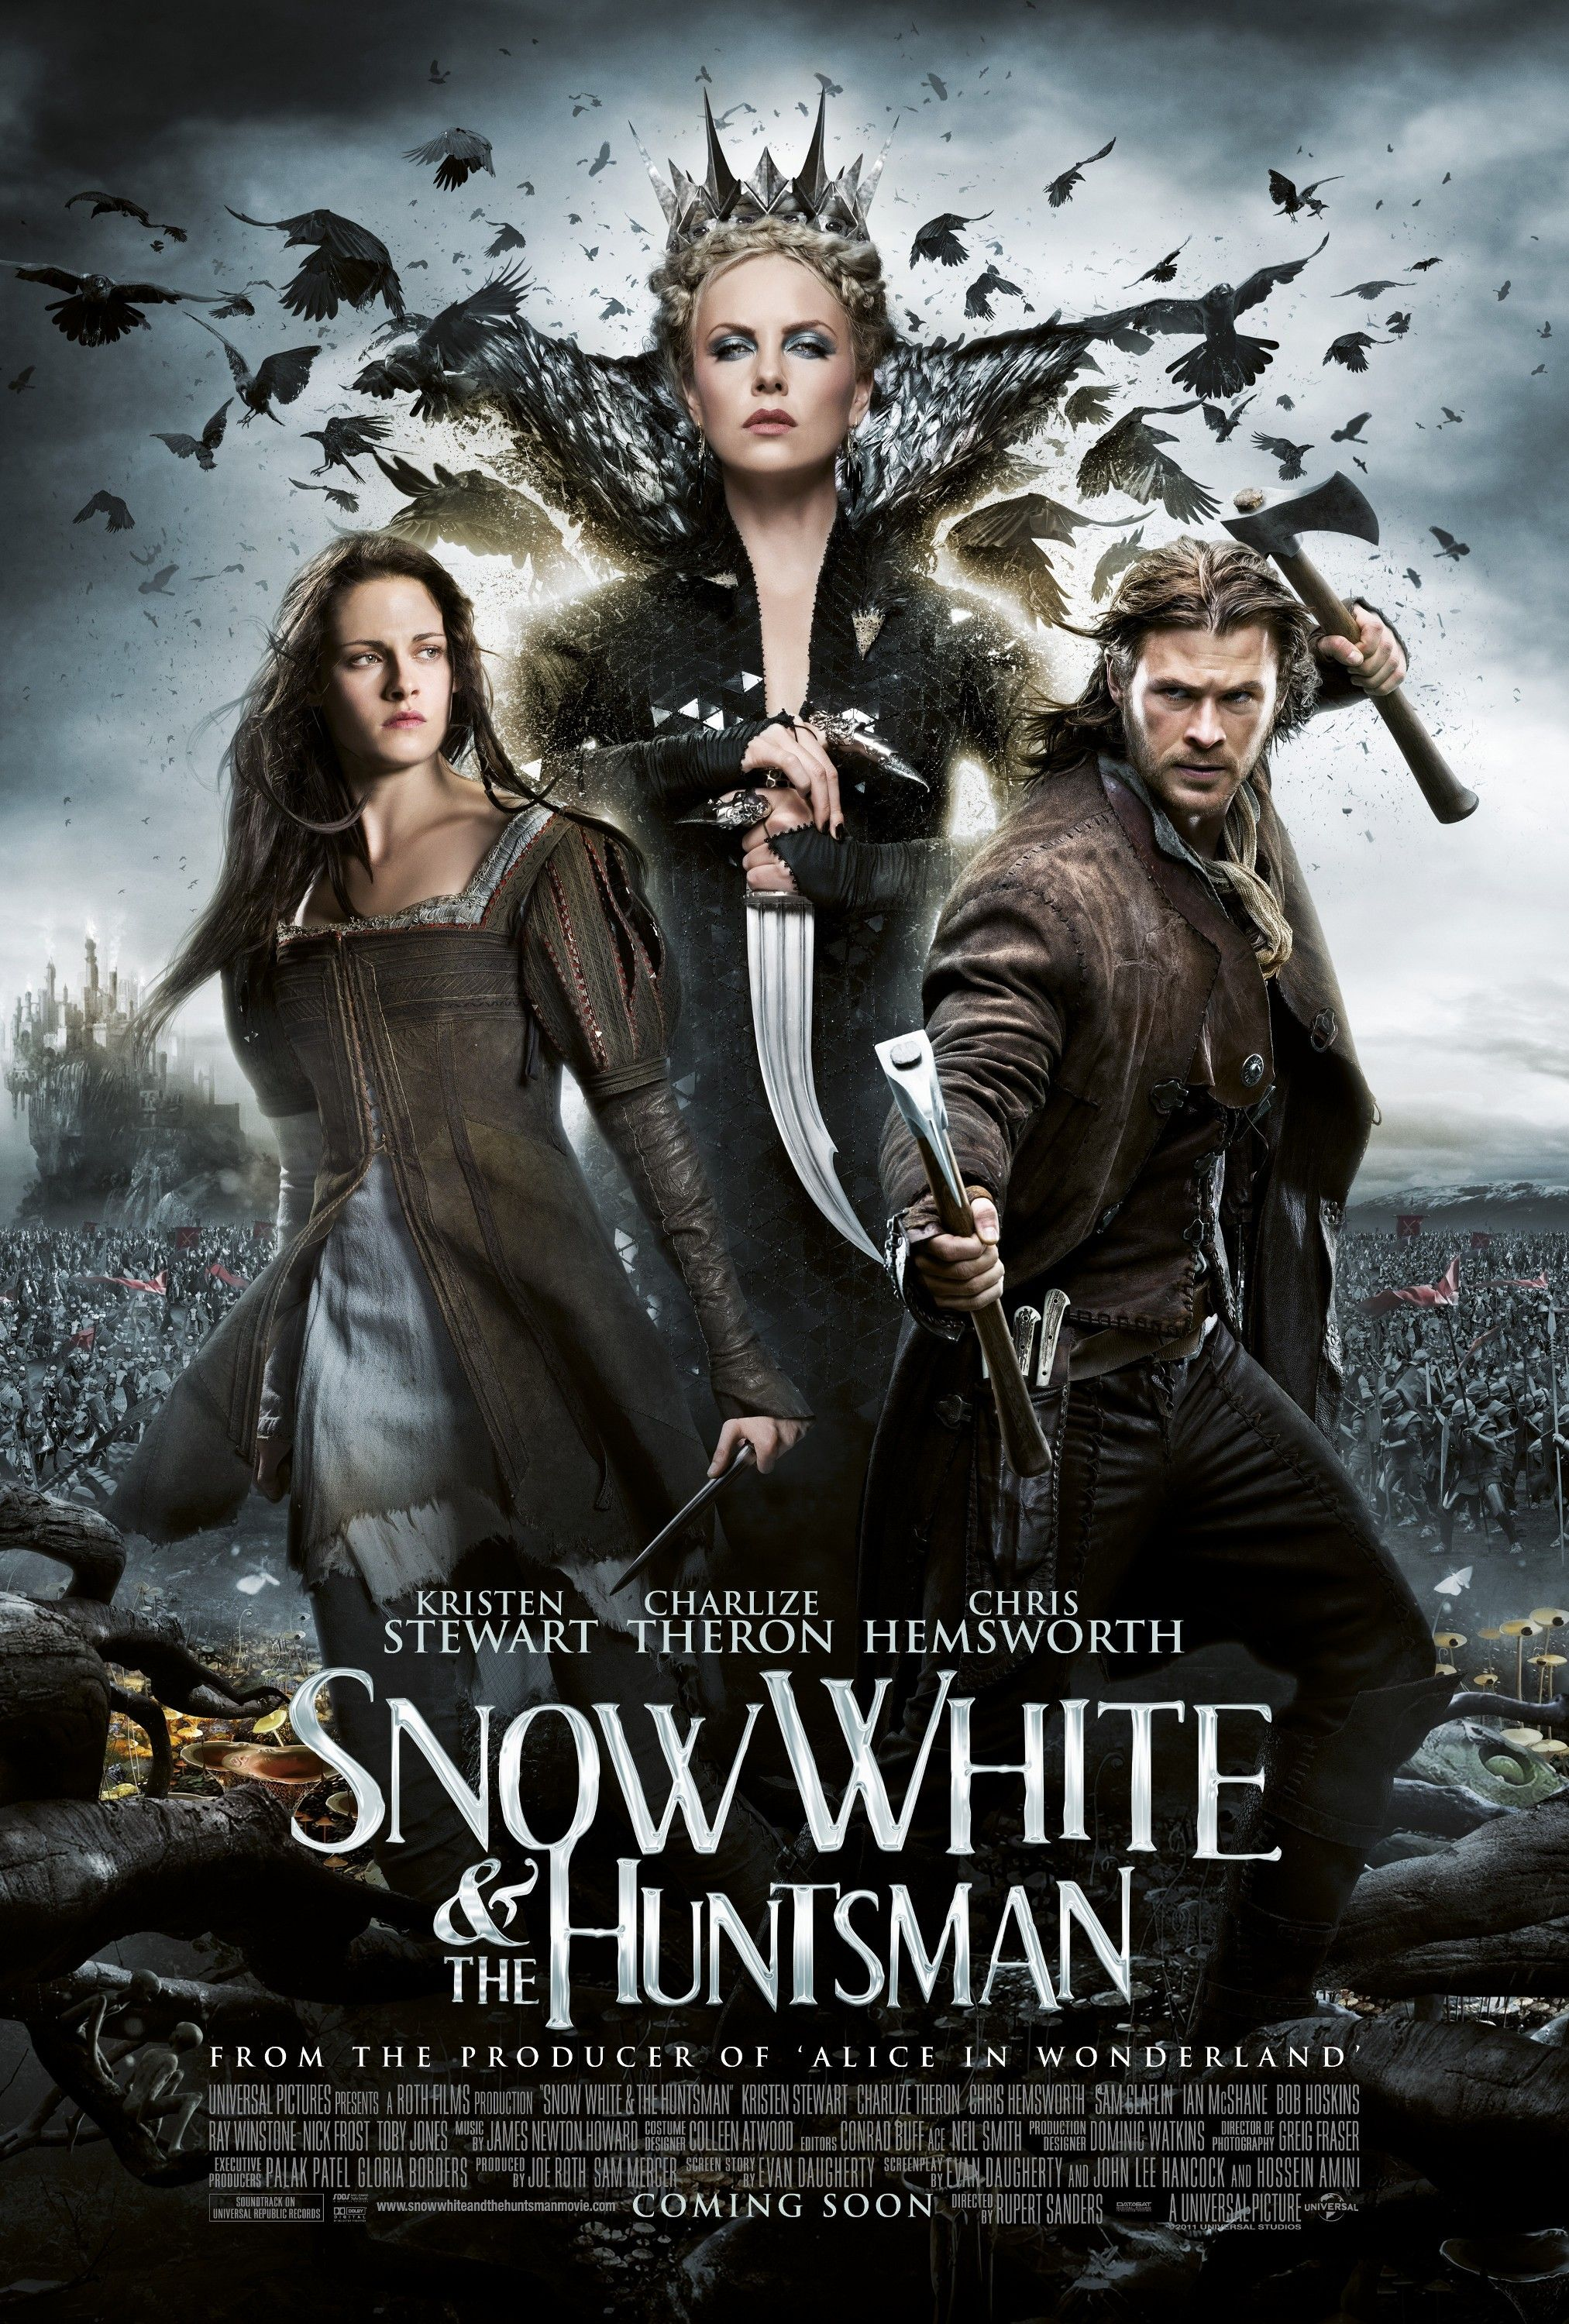 Snow White and the Huntsman | MOVIE MADNESS | Pinterest ...